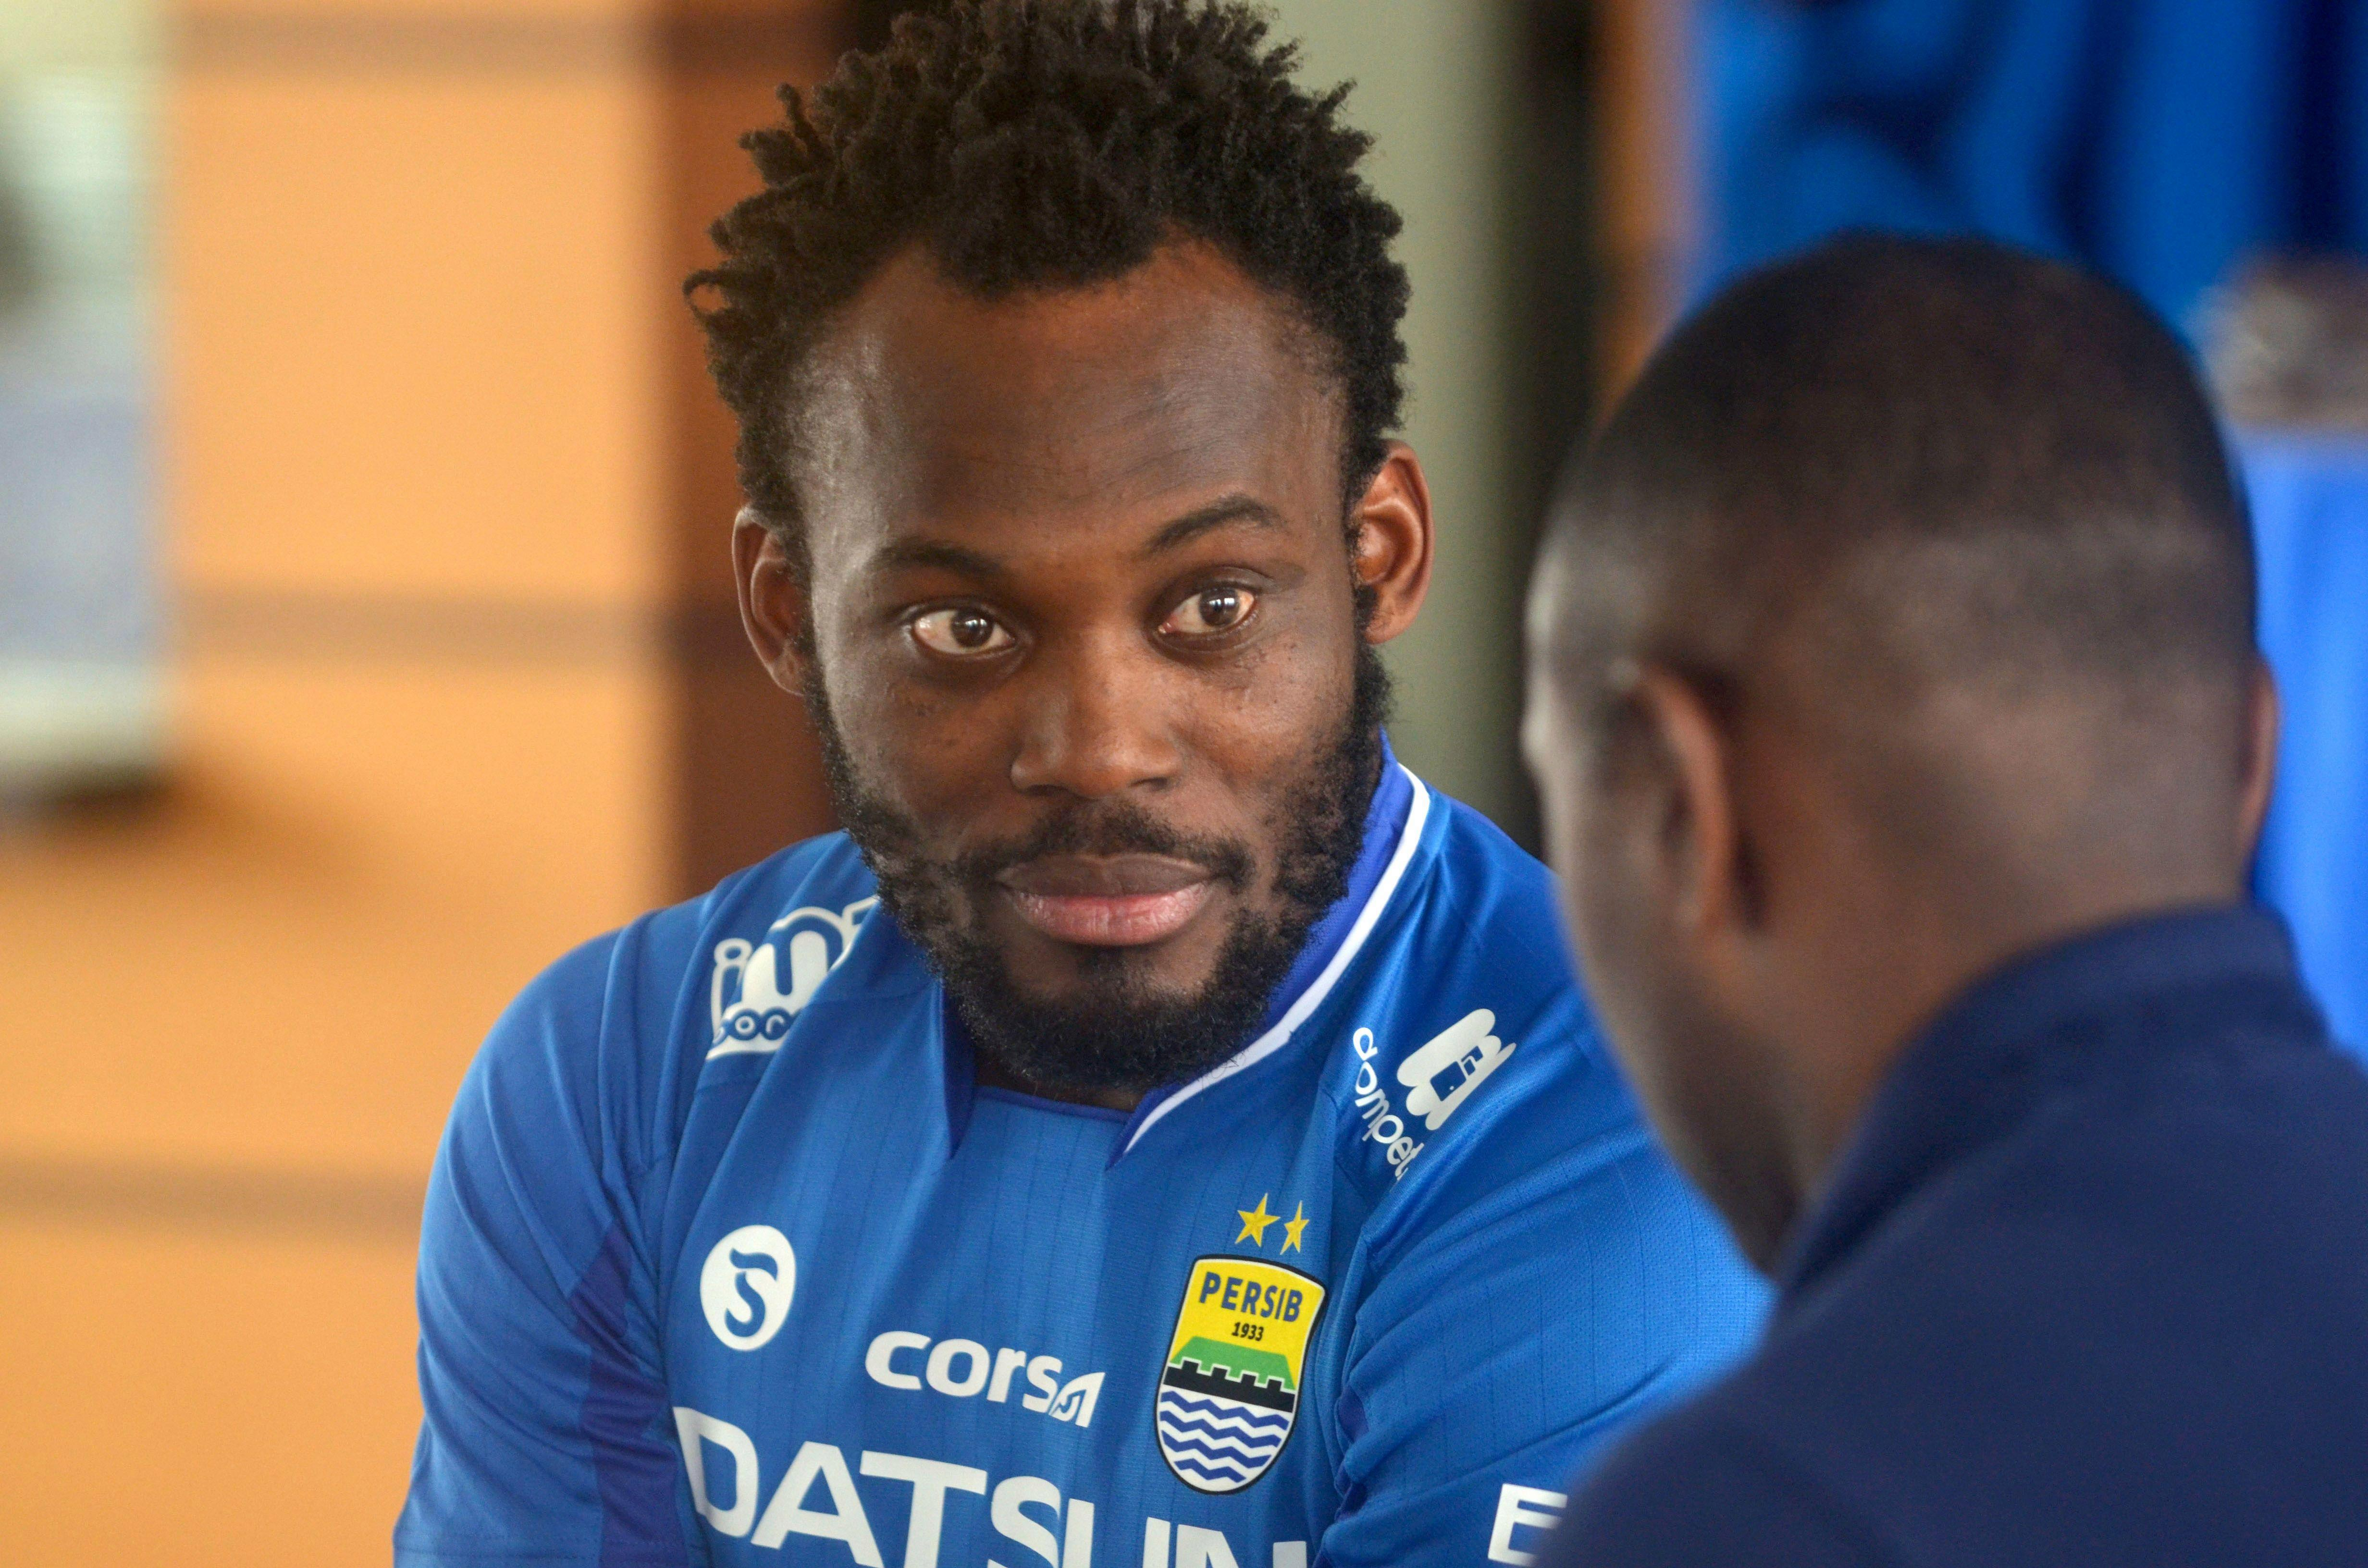 Chelsea hero Michael Essien suffers latest snub after being released by Persib Bandung in Indonesian minnow league